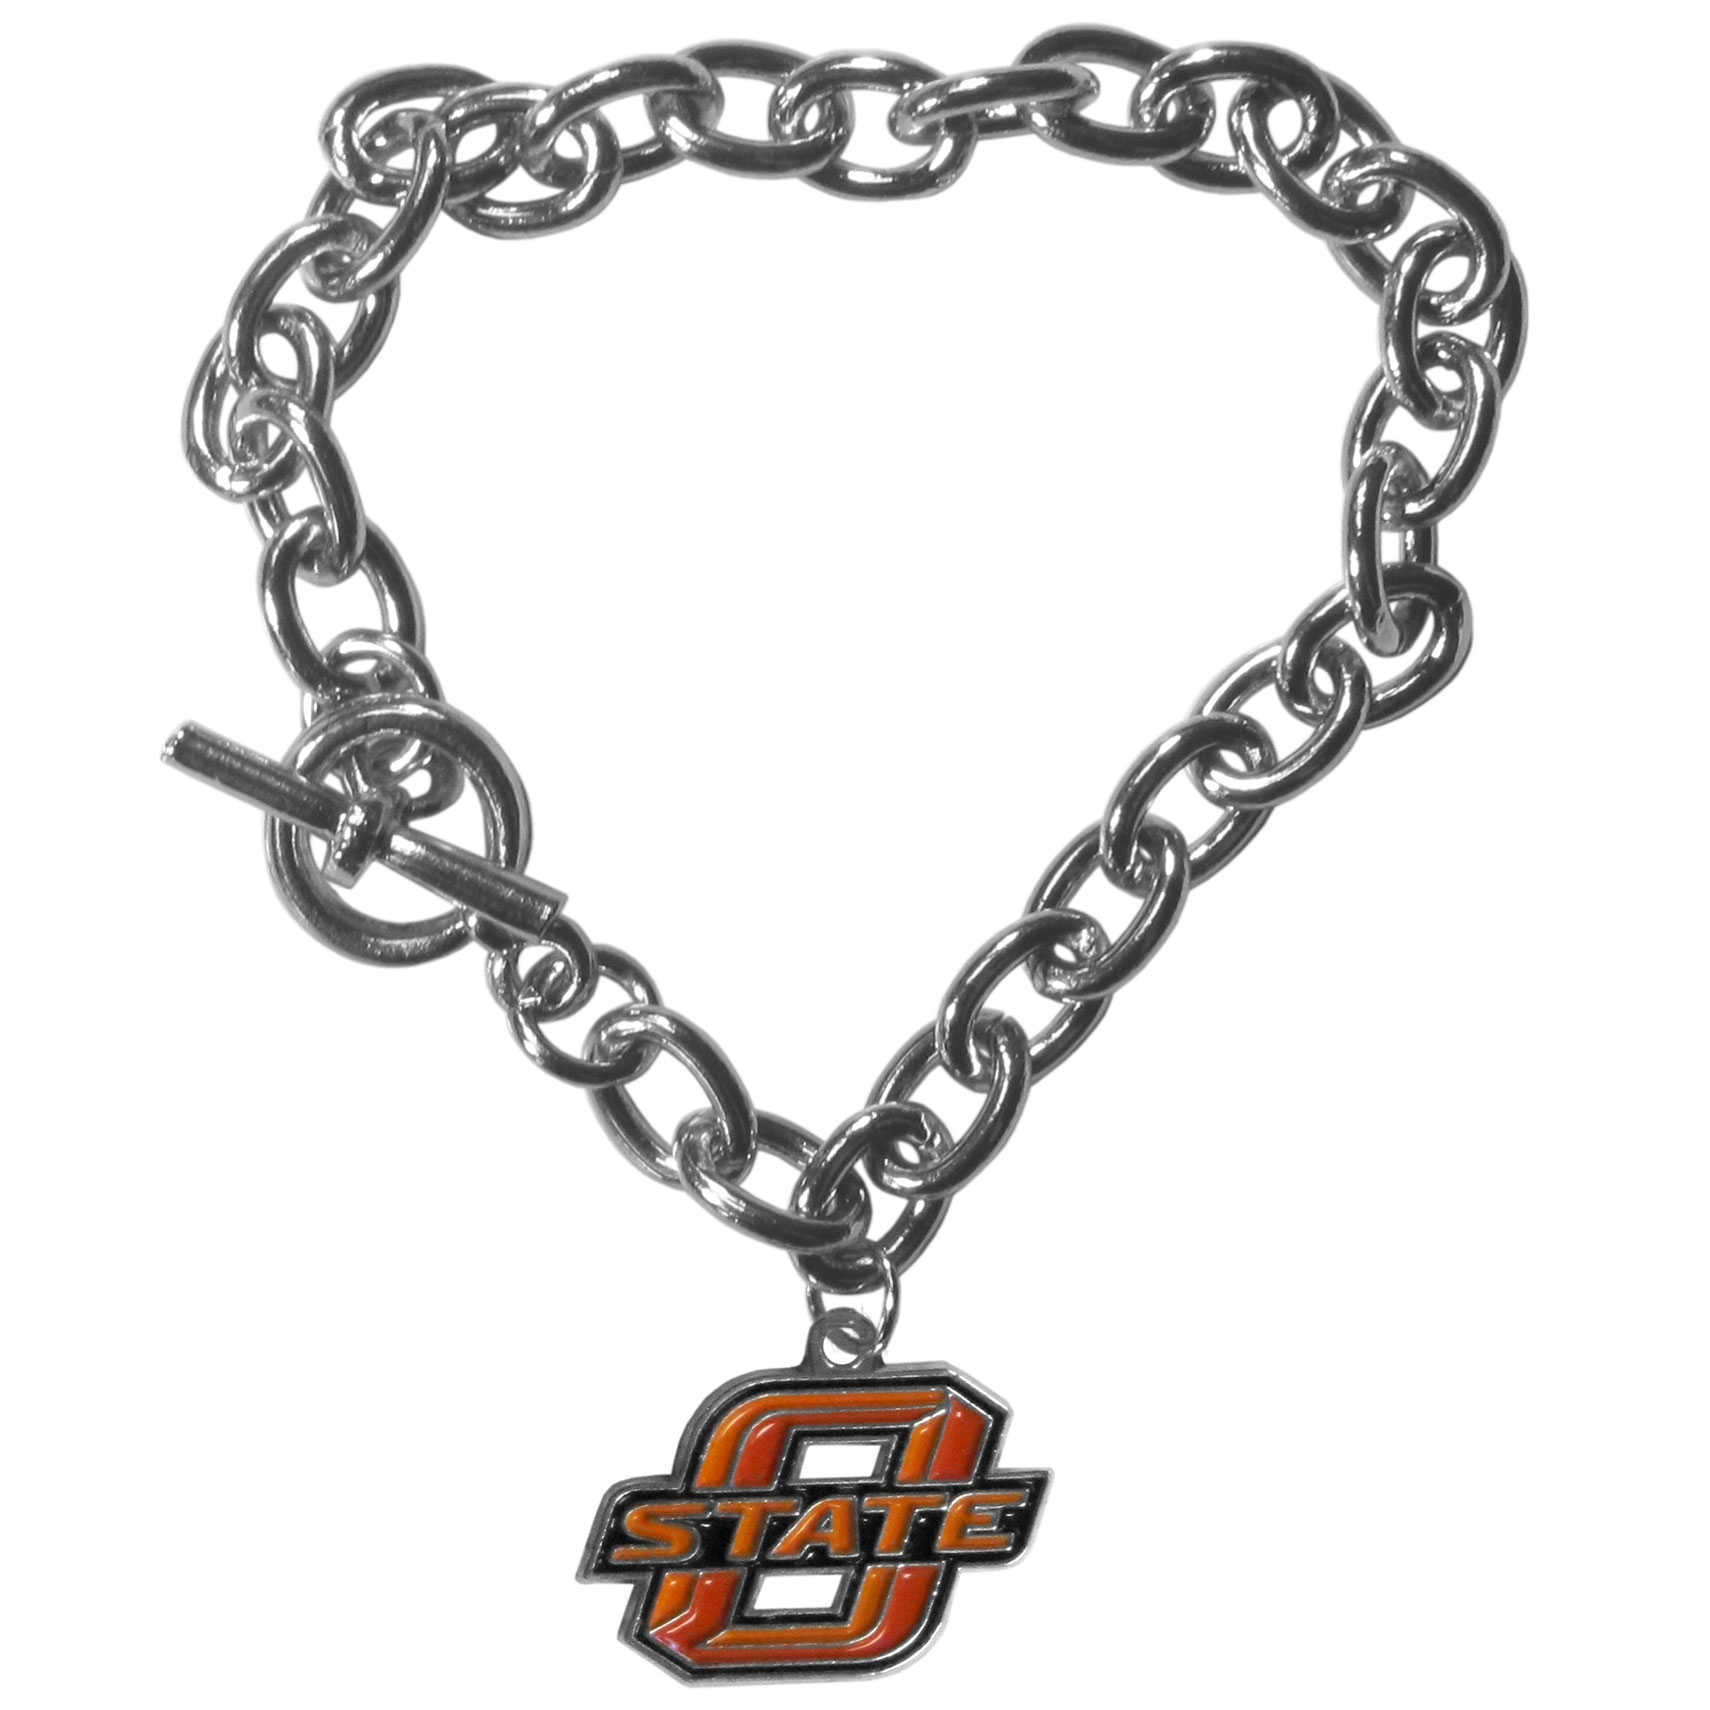 Oklahoma St. Cowboys Charm Chain Bracelets - Our classic single charm bracelet is a great way to show off your team pride! The 7.5 inch large link chain features a high polish Oklahoma St. Cowboys charm and features a toggle clasp which makes it super easy to take on and off.